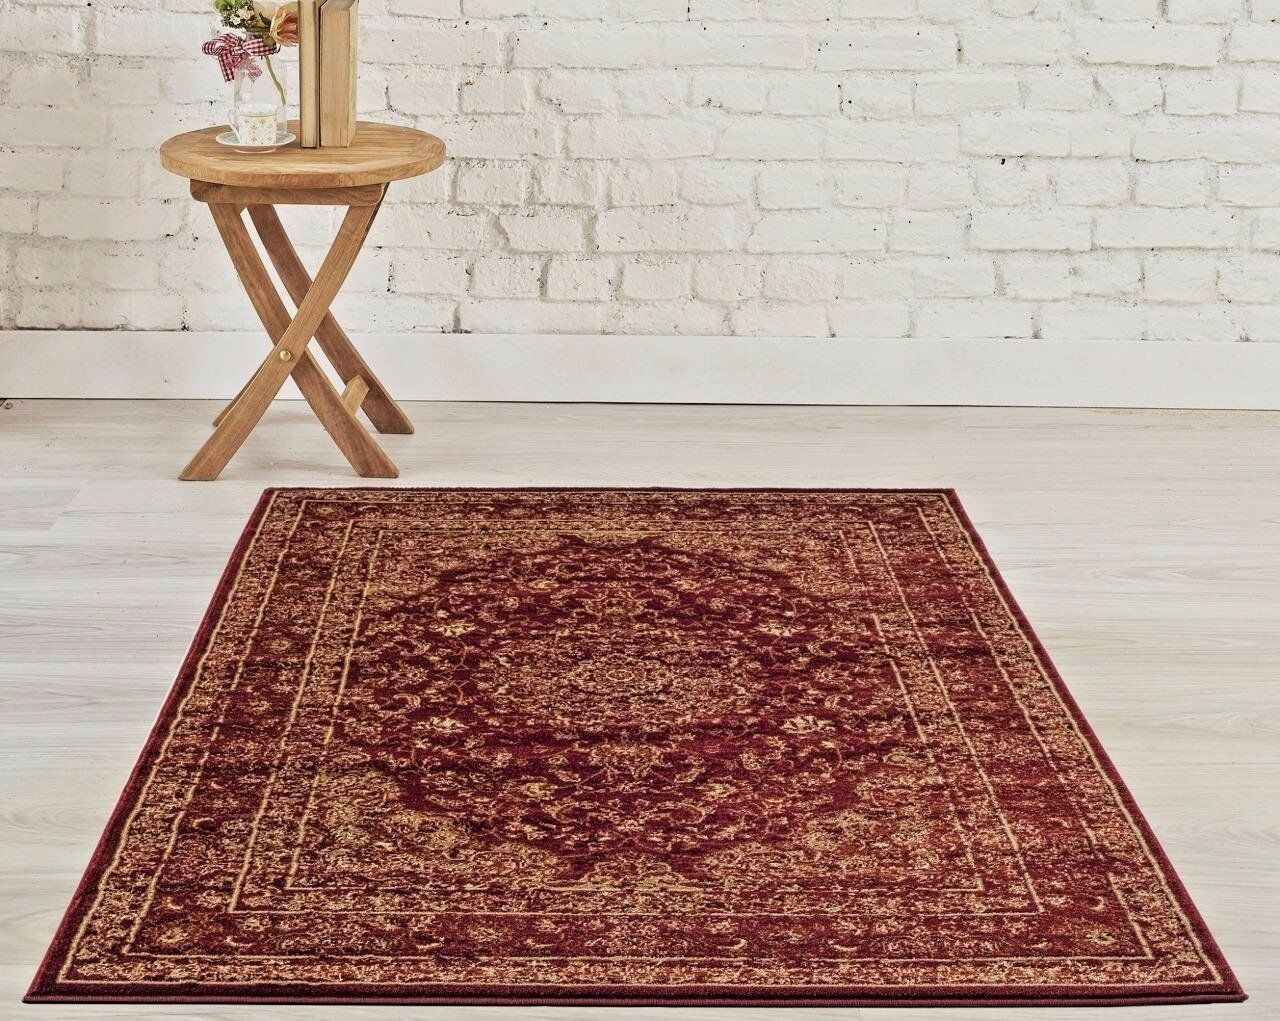 Rugs Area Carpet 8x10 Rug Large Oriental Persian Floor Red New